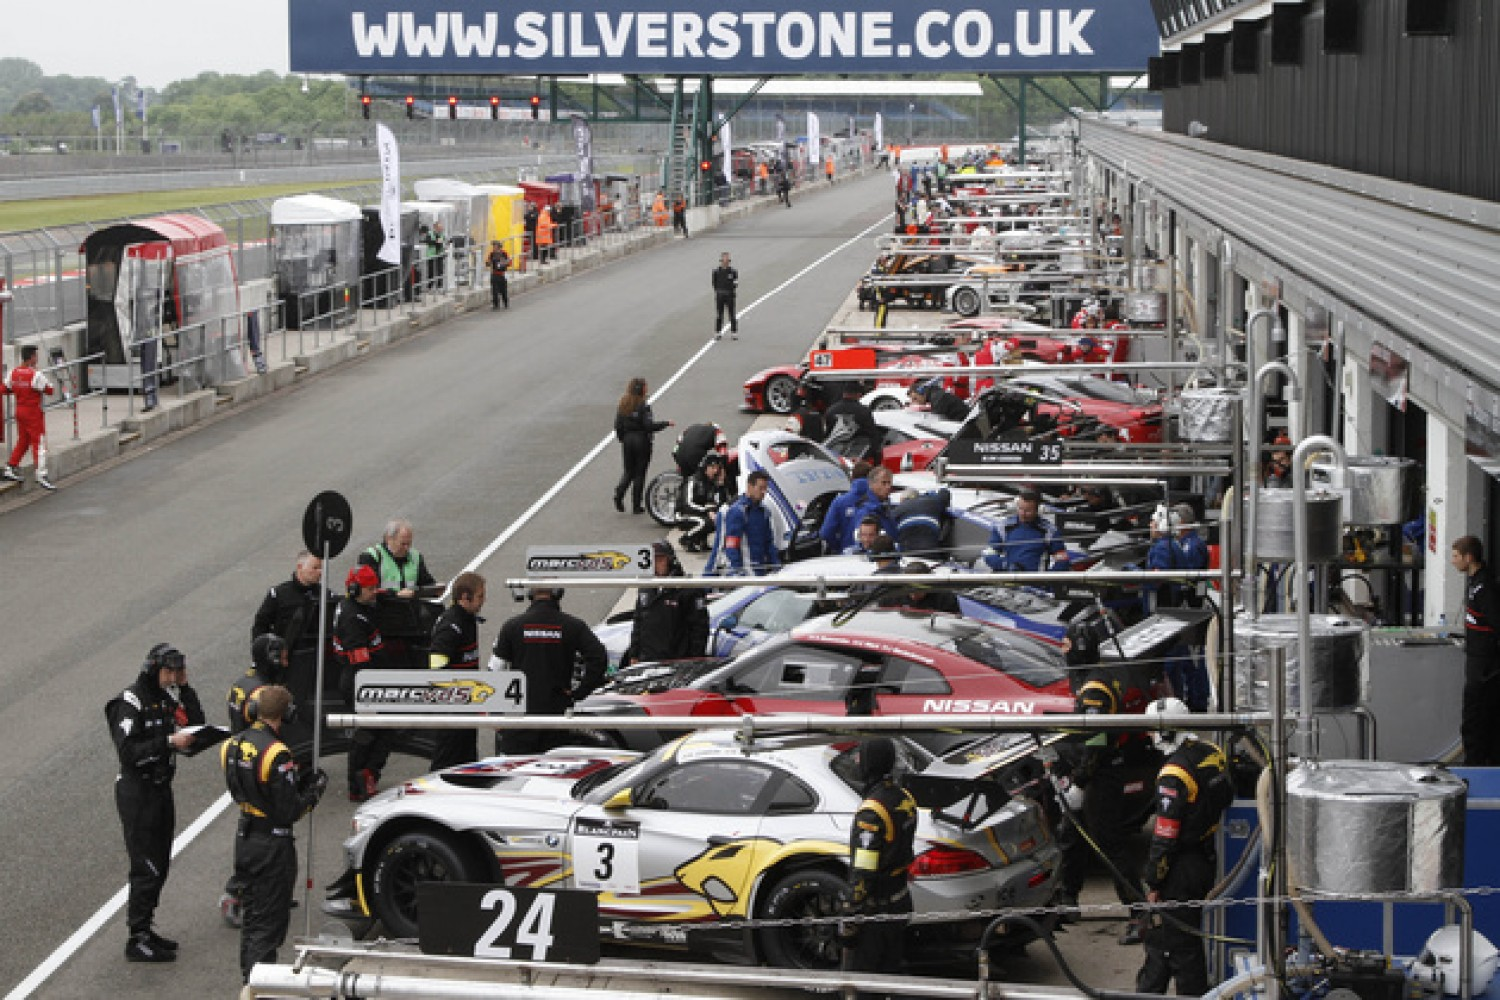 EPIC SILVERSTONE SHOWDOWN FOR COLOSSAL GT3 GRID